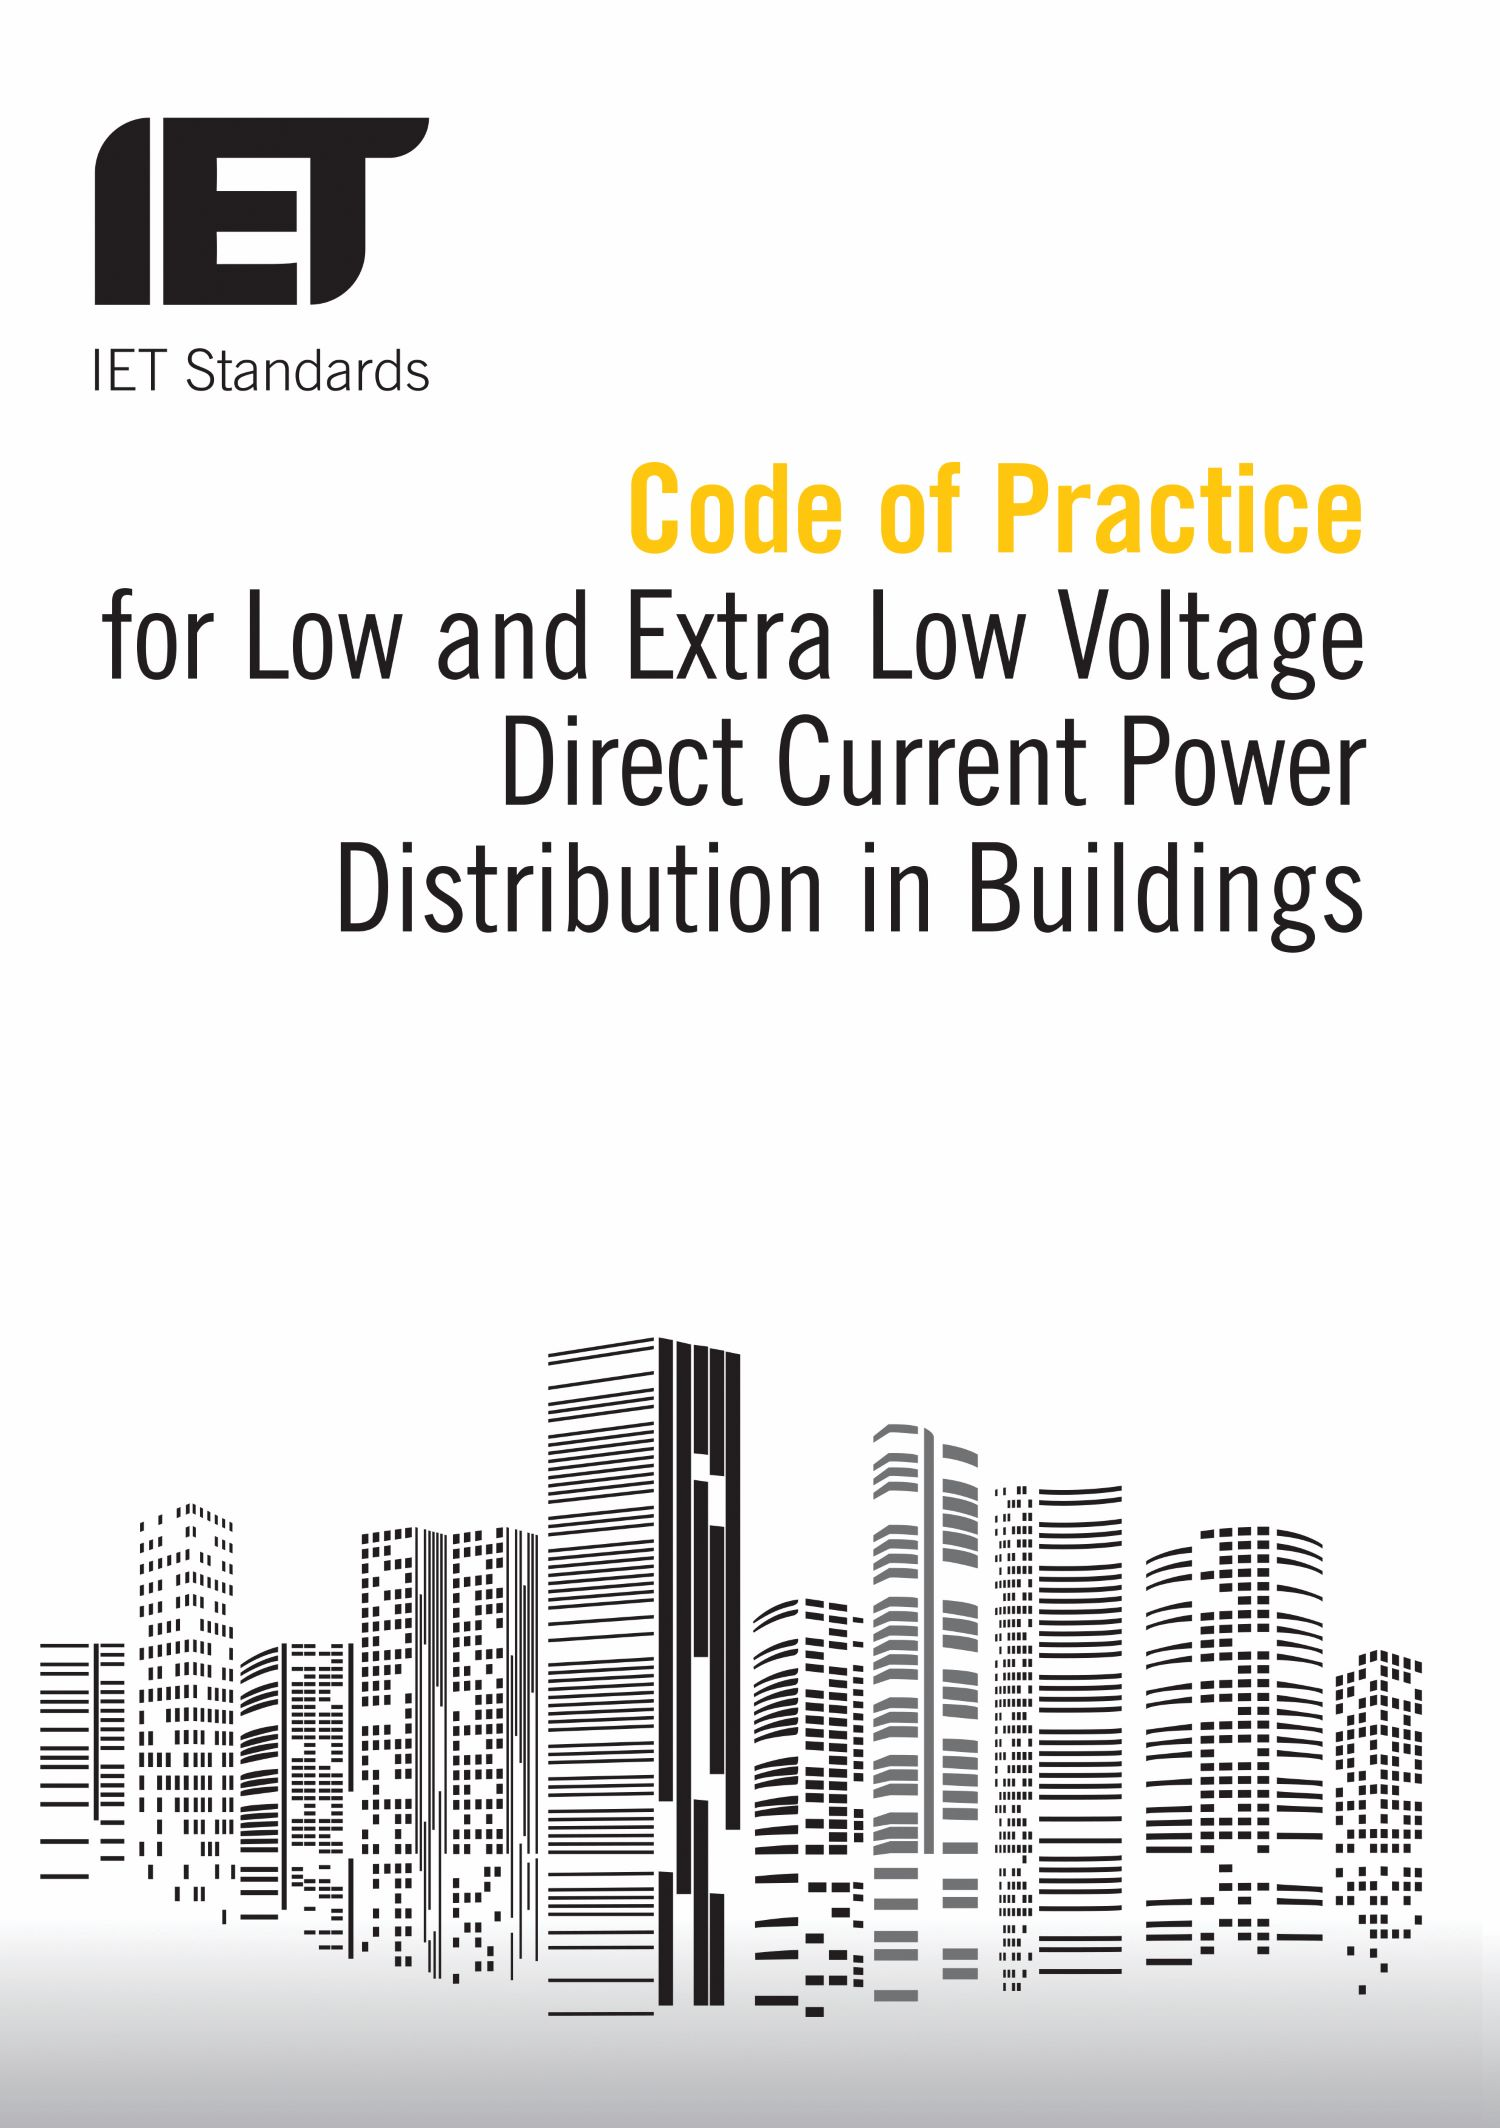 Code of Practice for Low and Extra Low Voltage Direct Current Power Distribution in Buildings